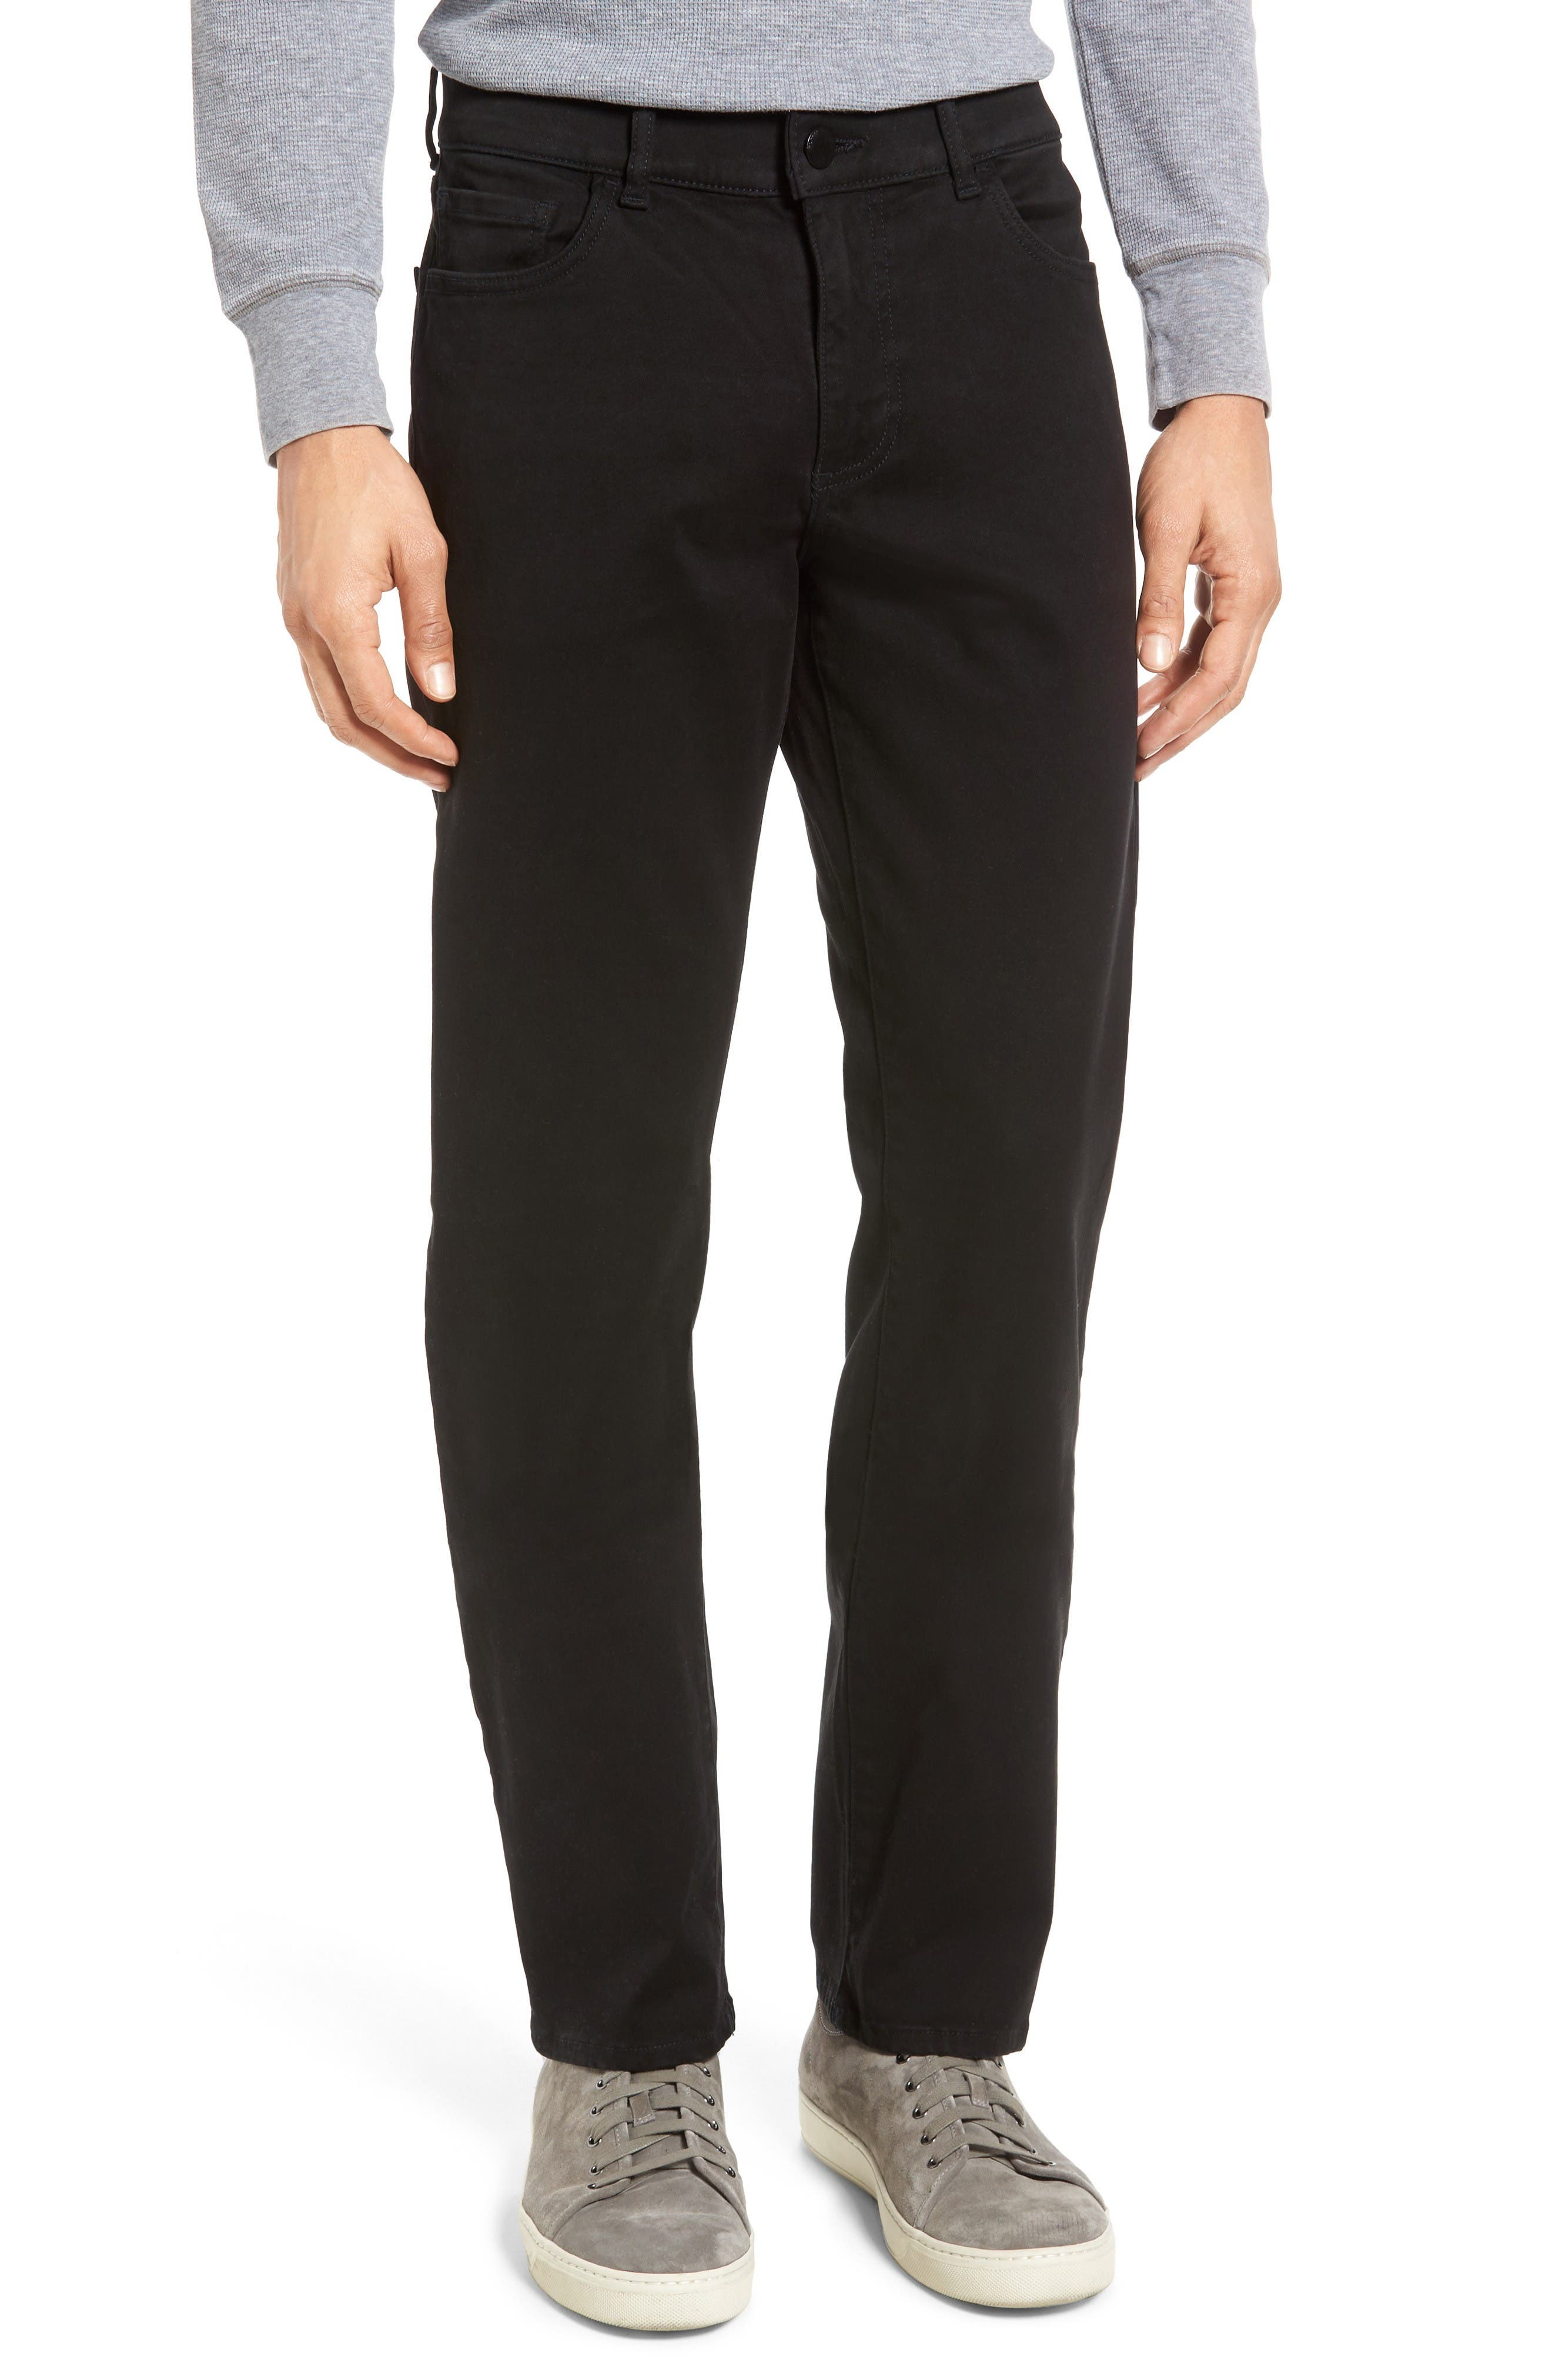 Russell Slim Fit Sateen Twill Pants,                         Main,                         color, Coal